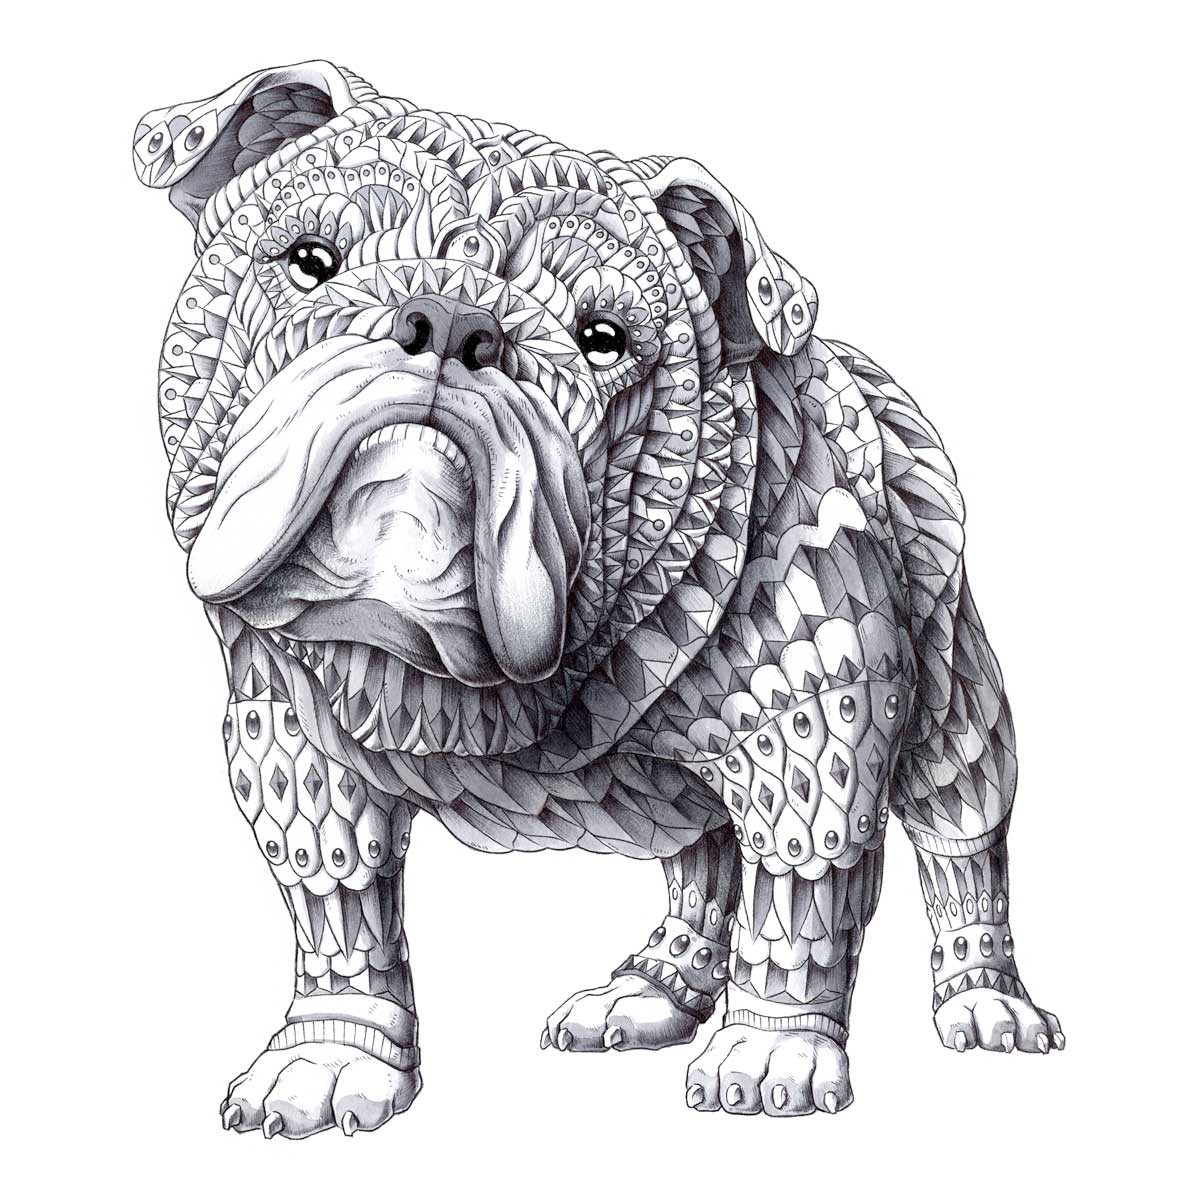 English Bulldog (Original Artwork)